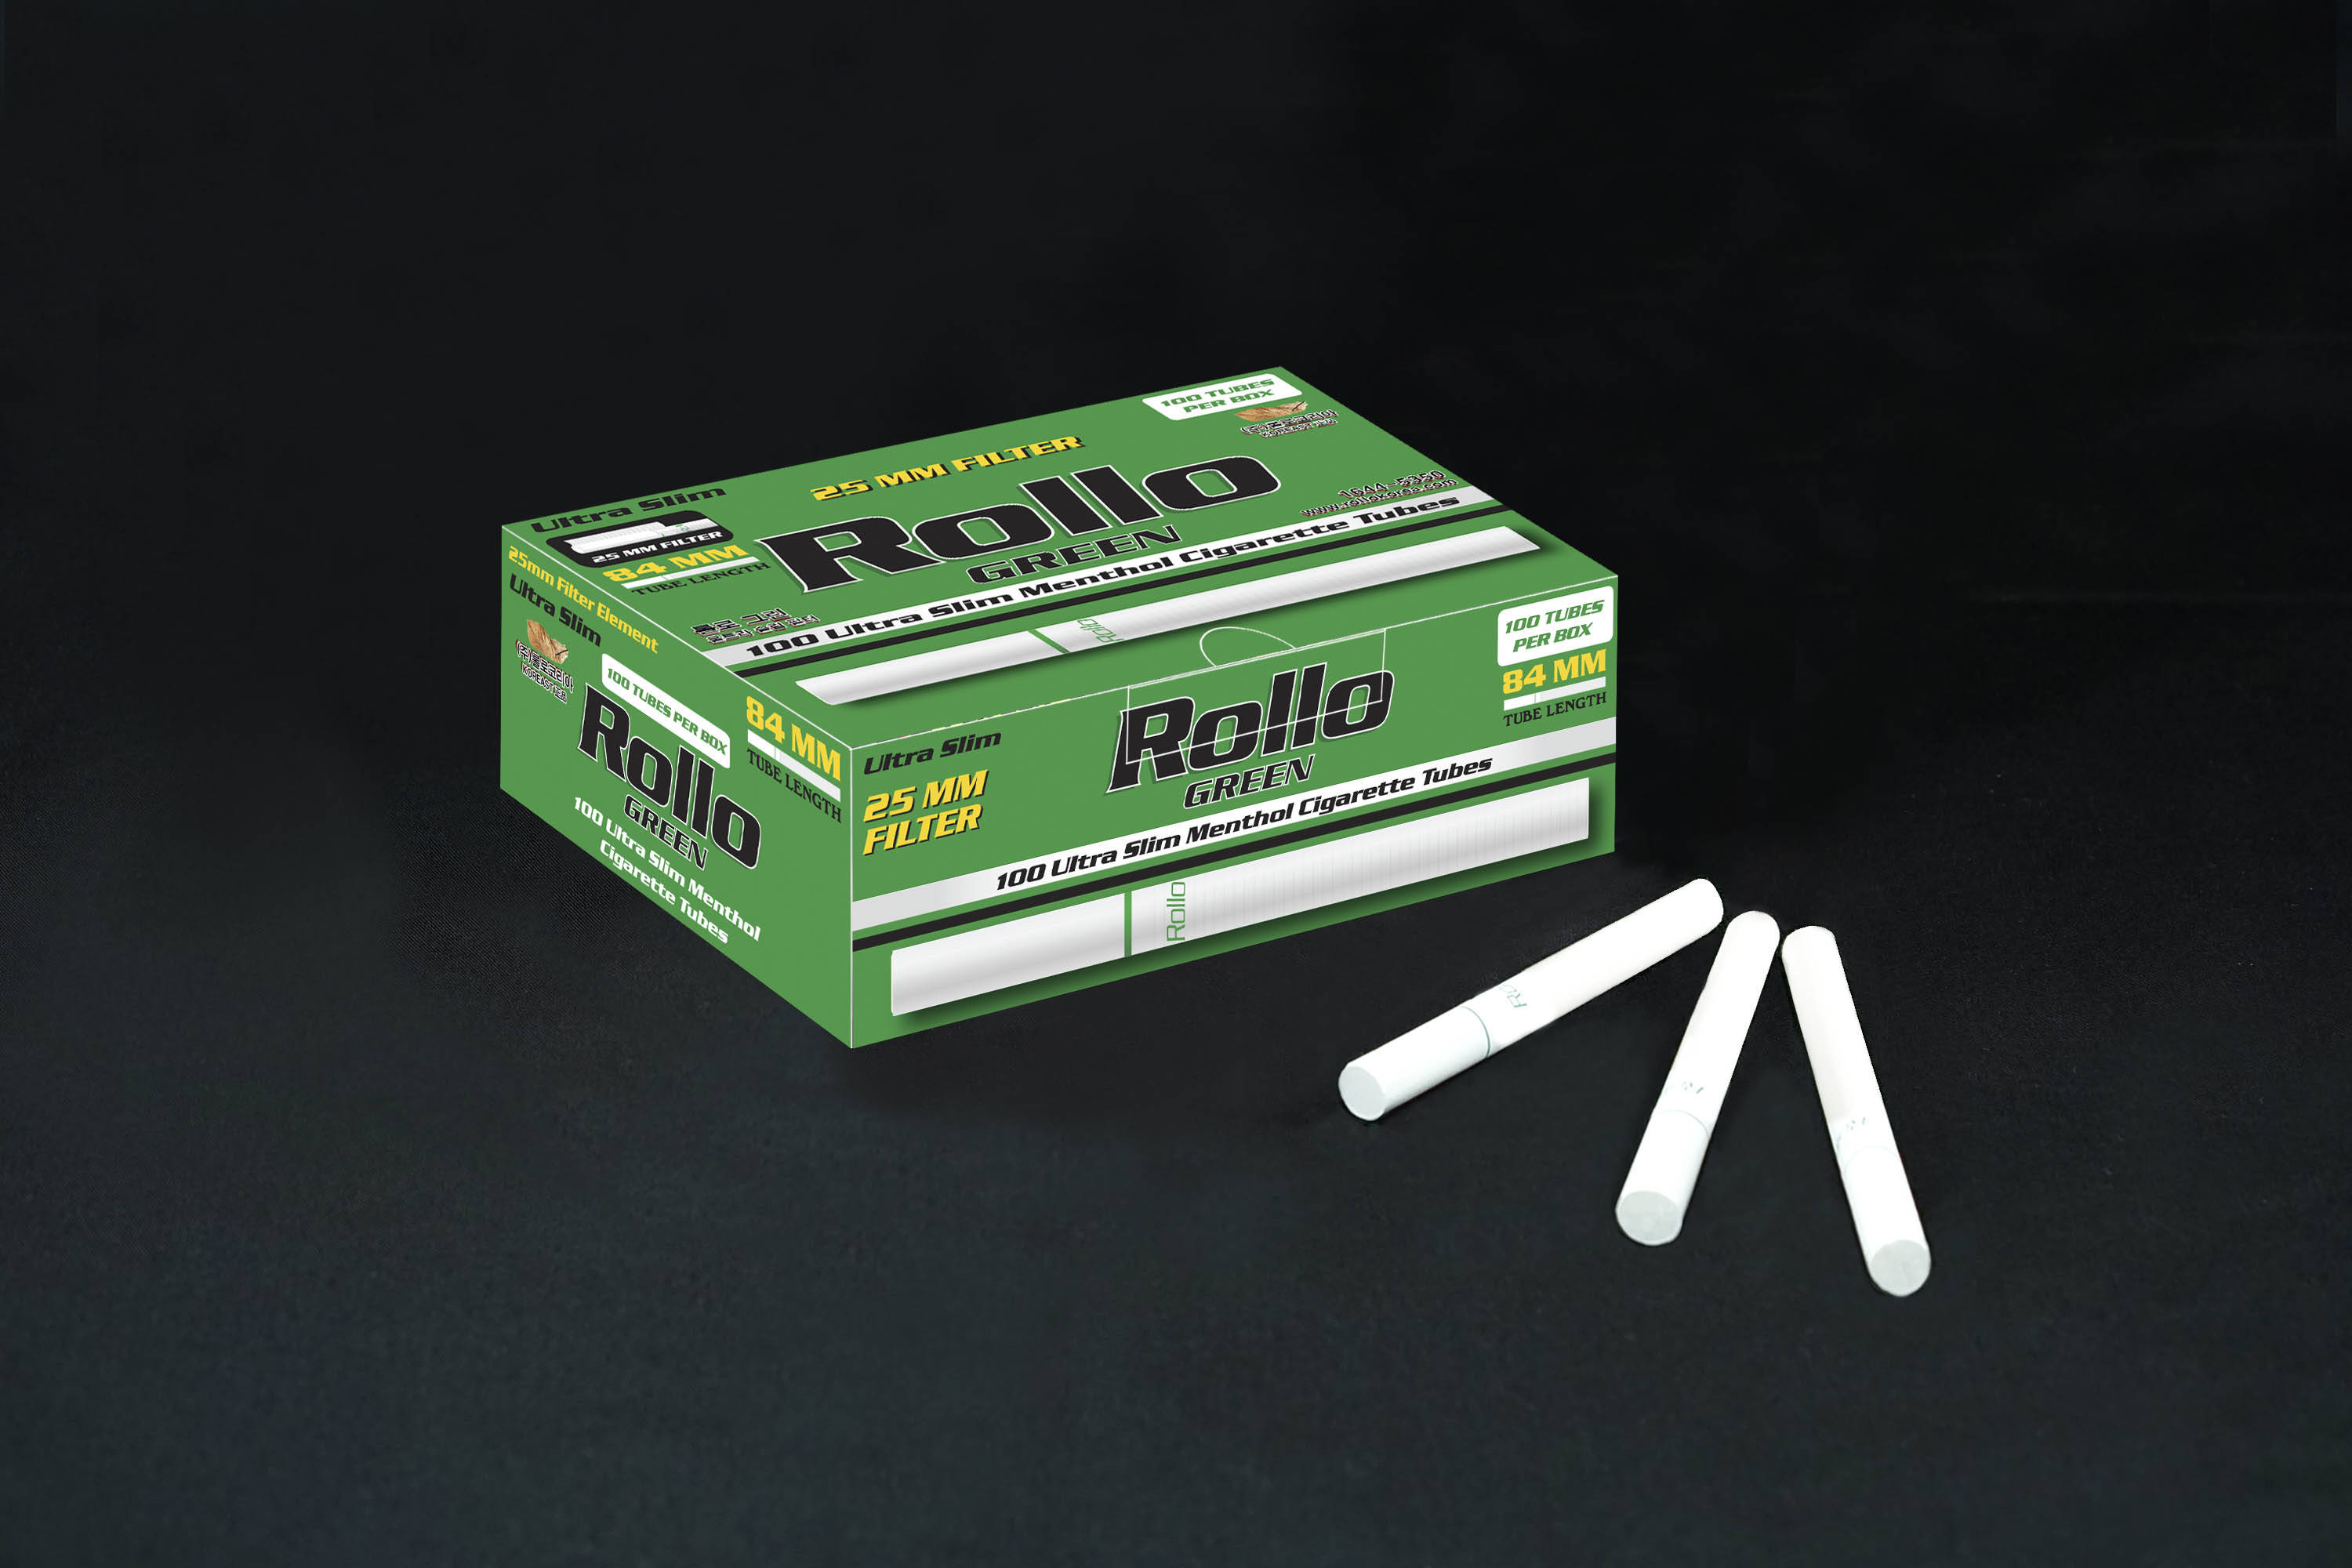 Menthol Cigarette Tubes Rollo Green Ultra Slim 100ct 25mm filter length